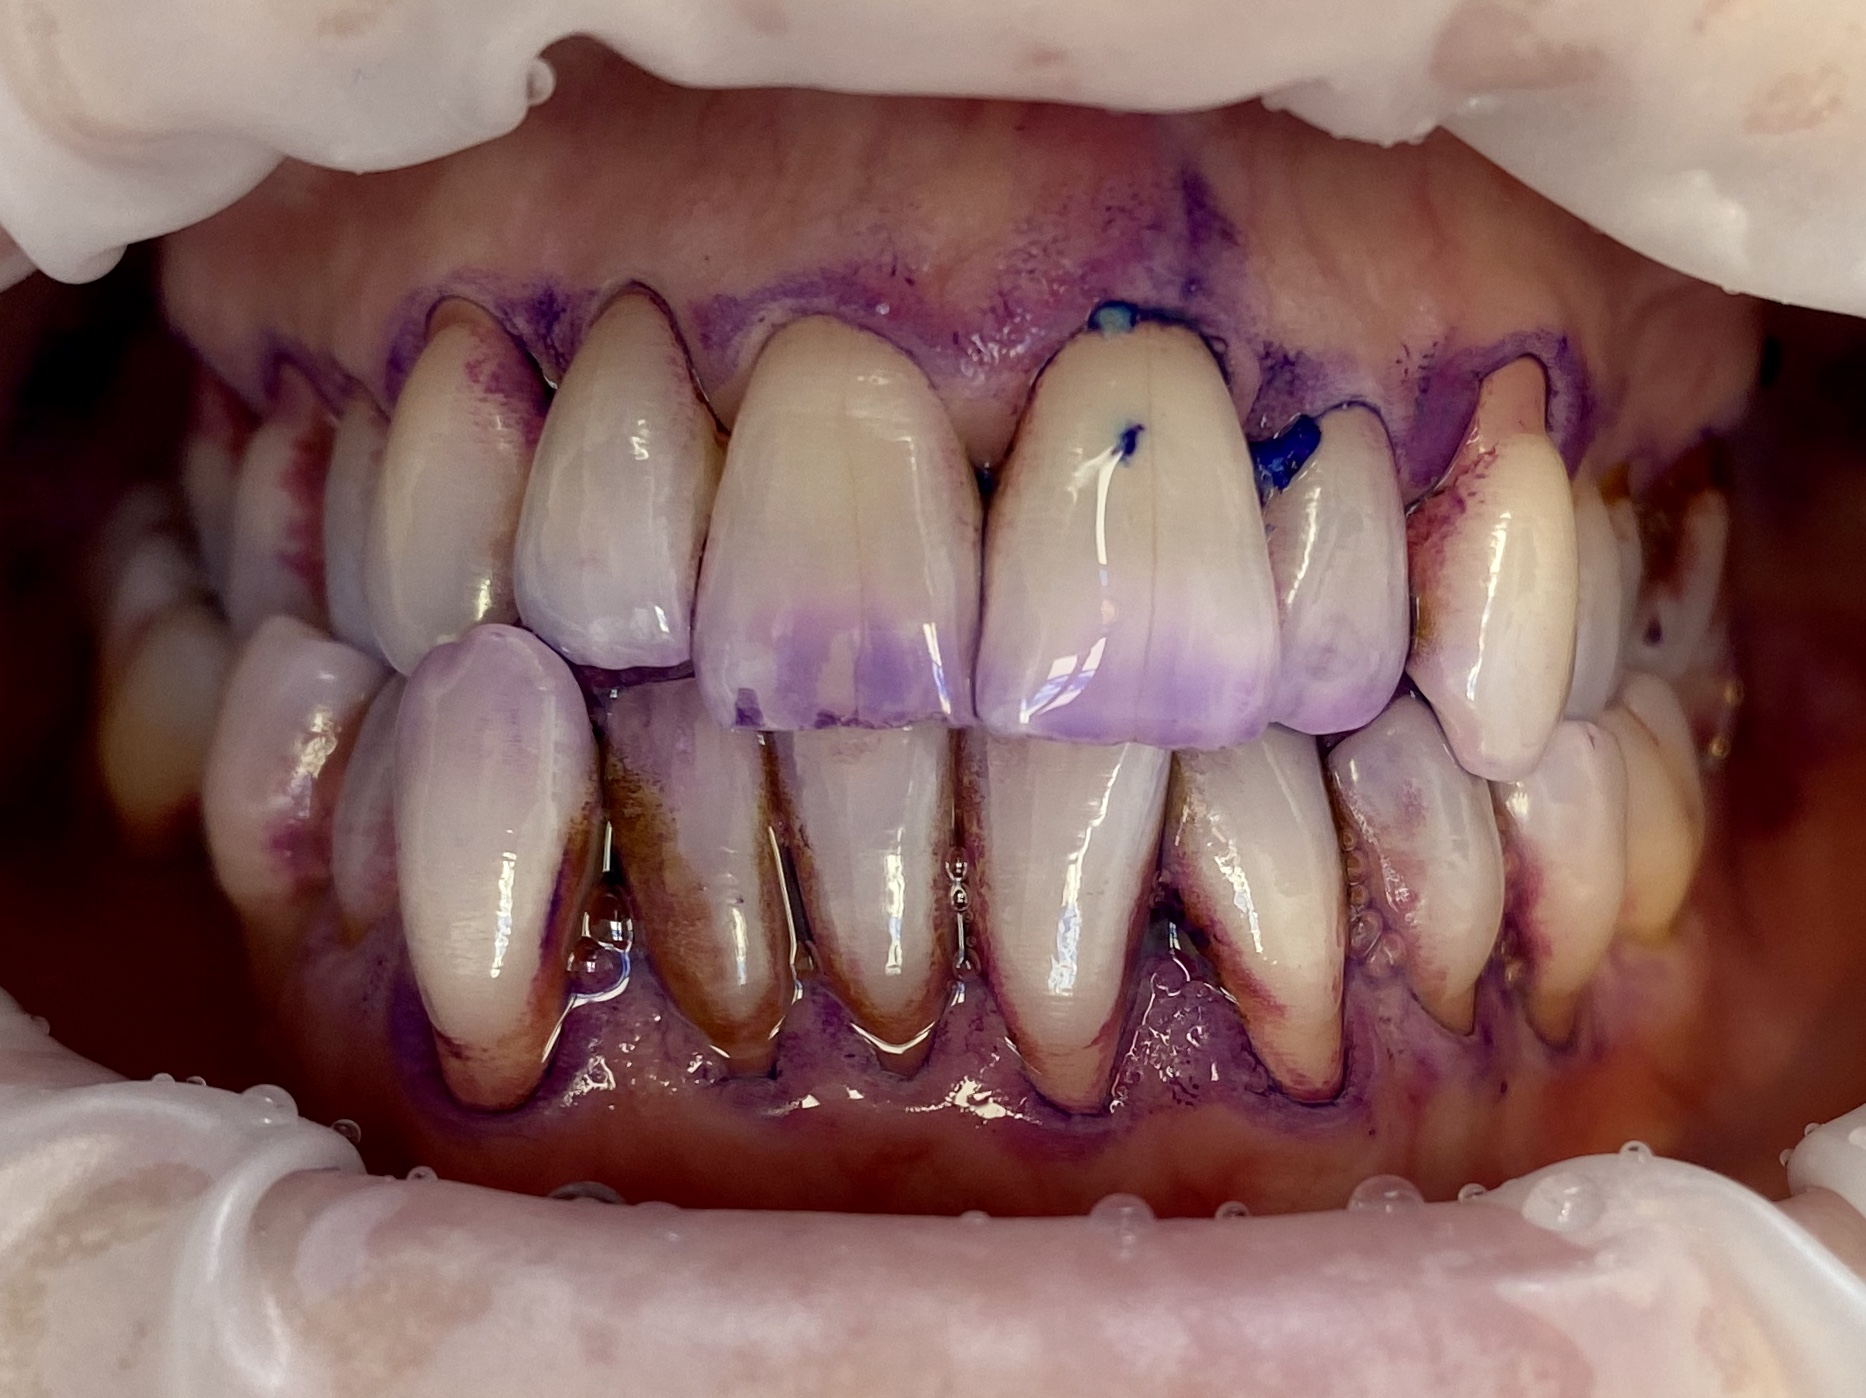 disclosing solution showing biofilm on stained teeth